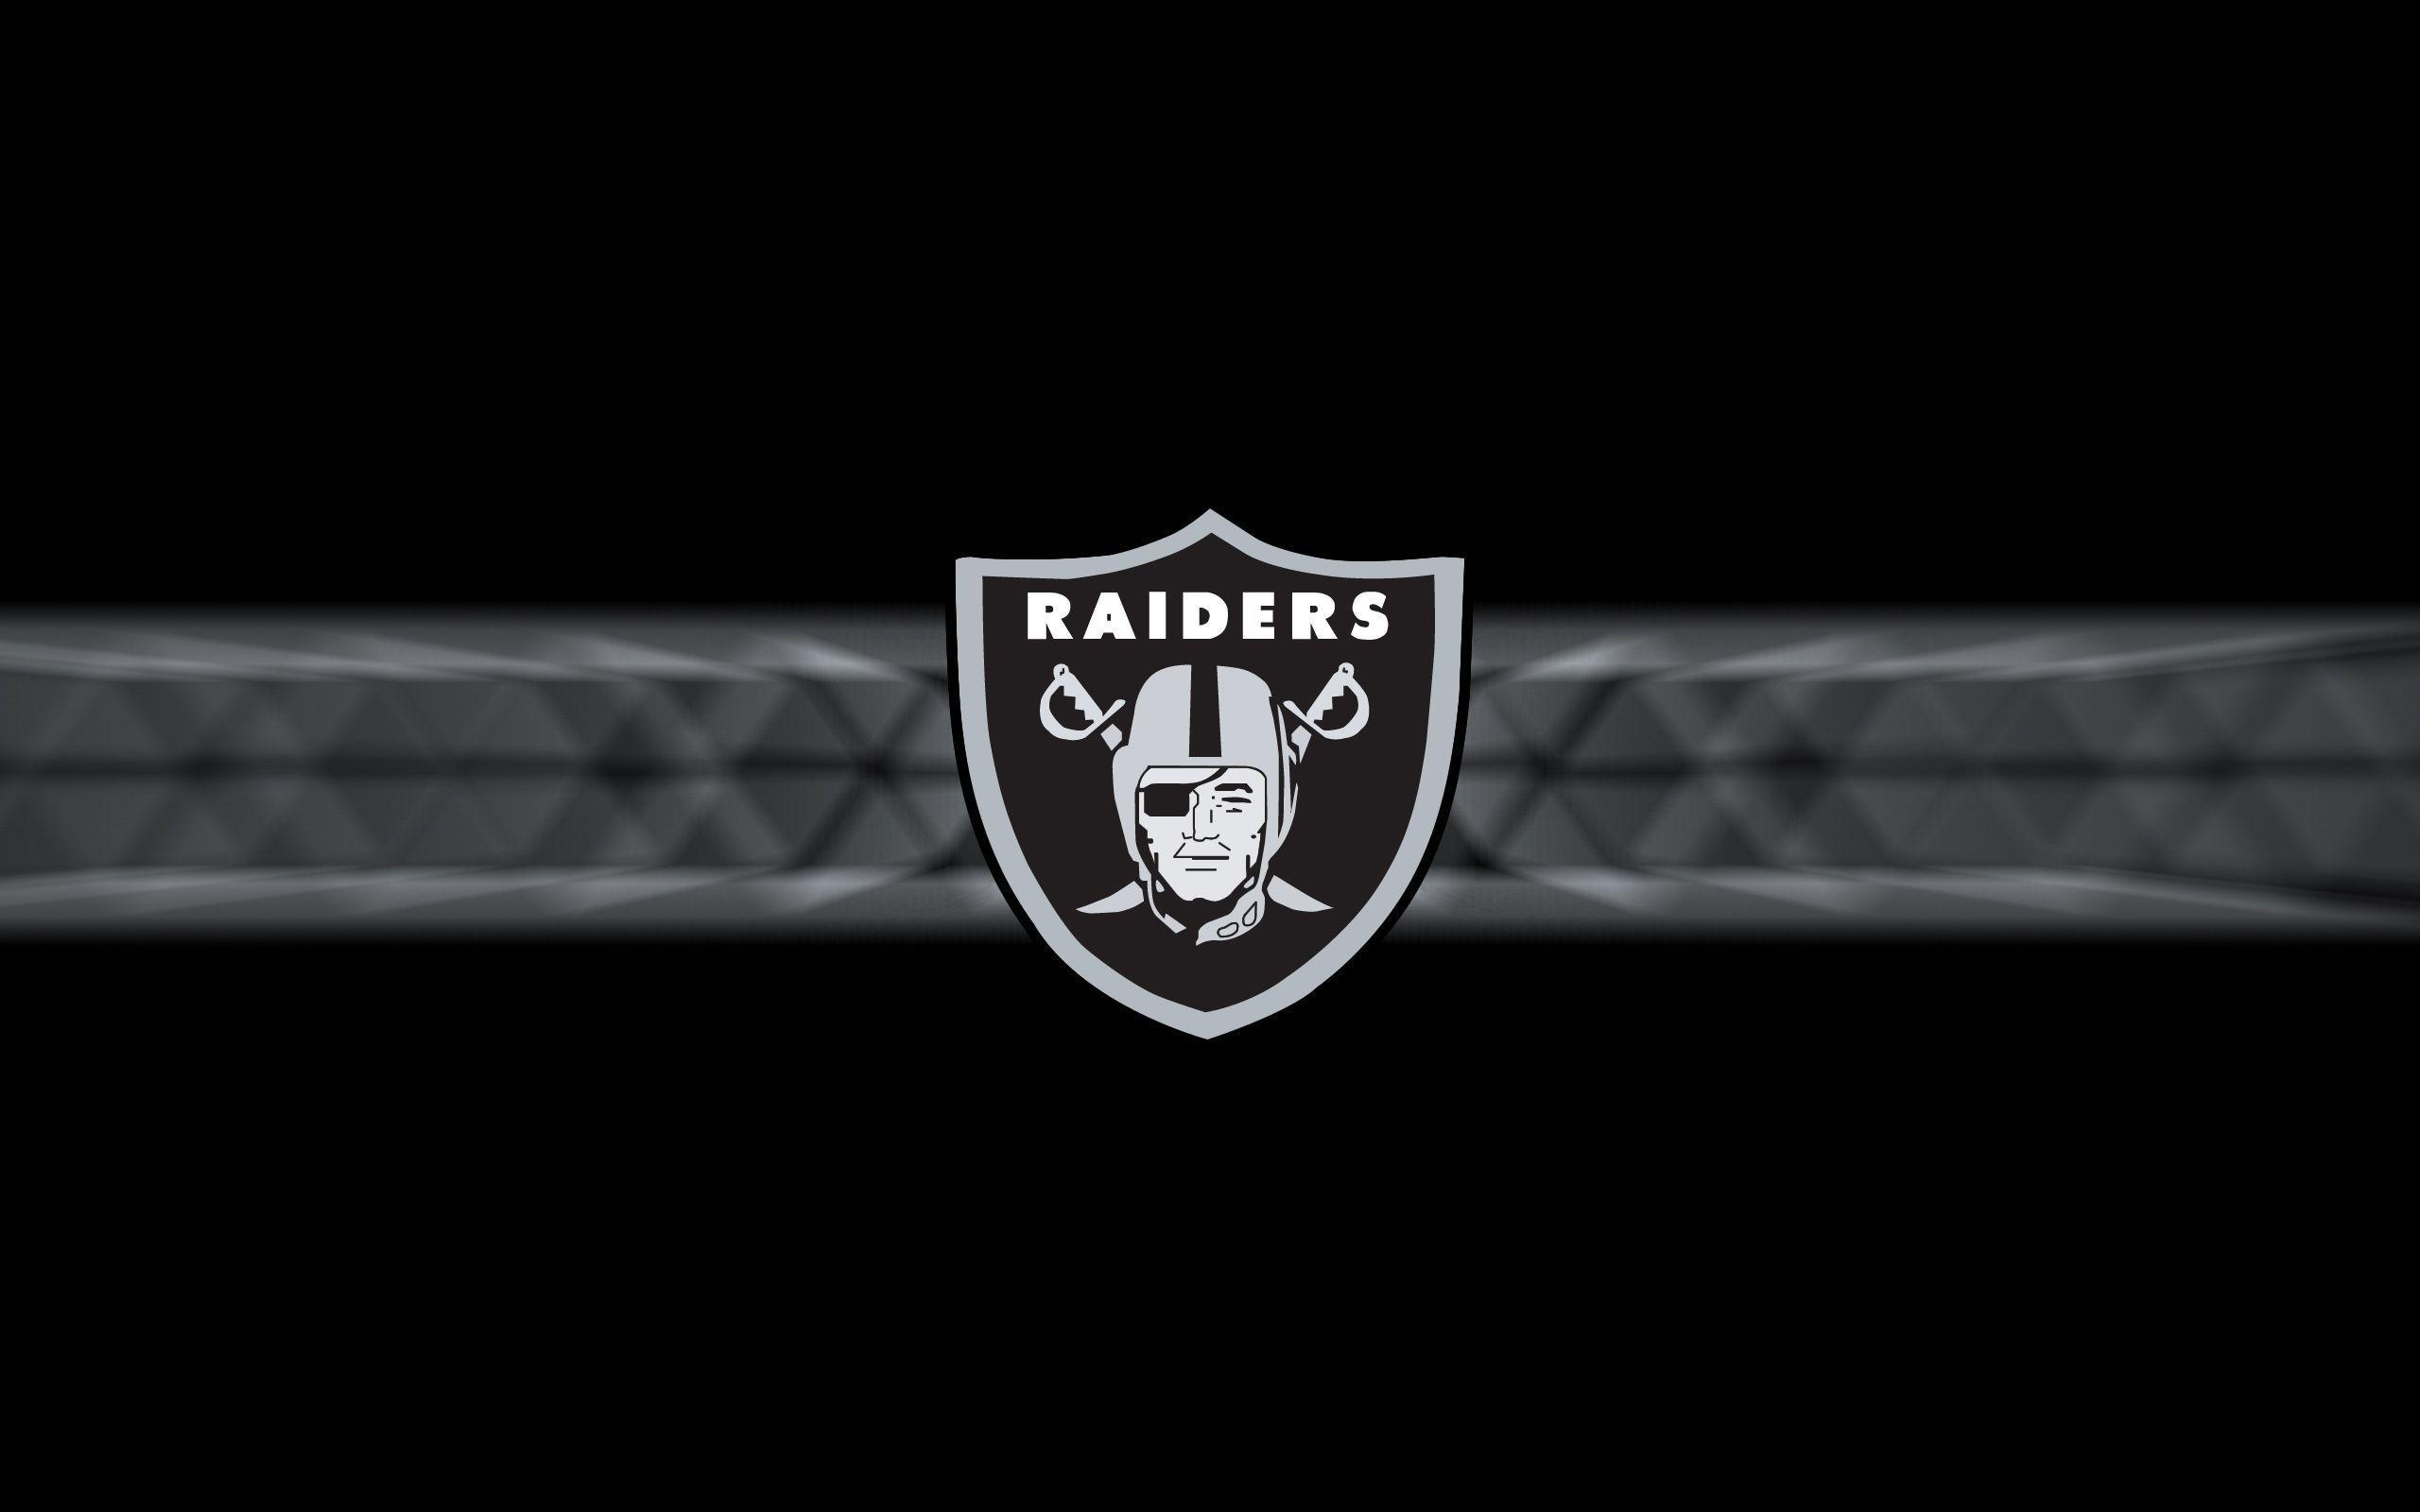 Oakland Raiders 2014 NFL Logo Wallpapers Wide or HD